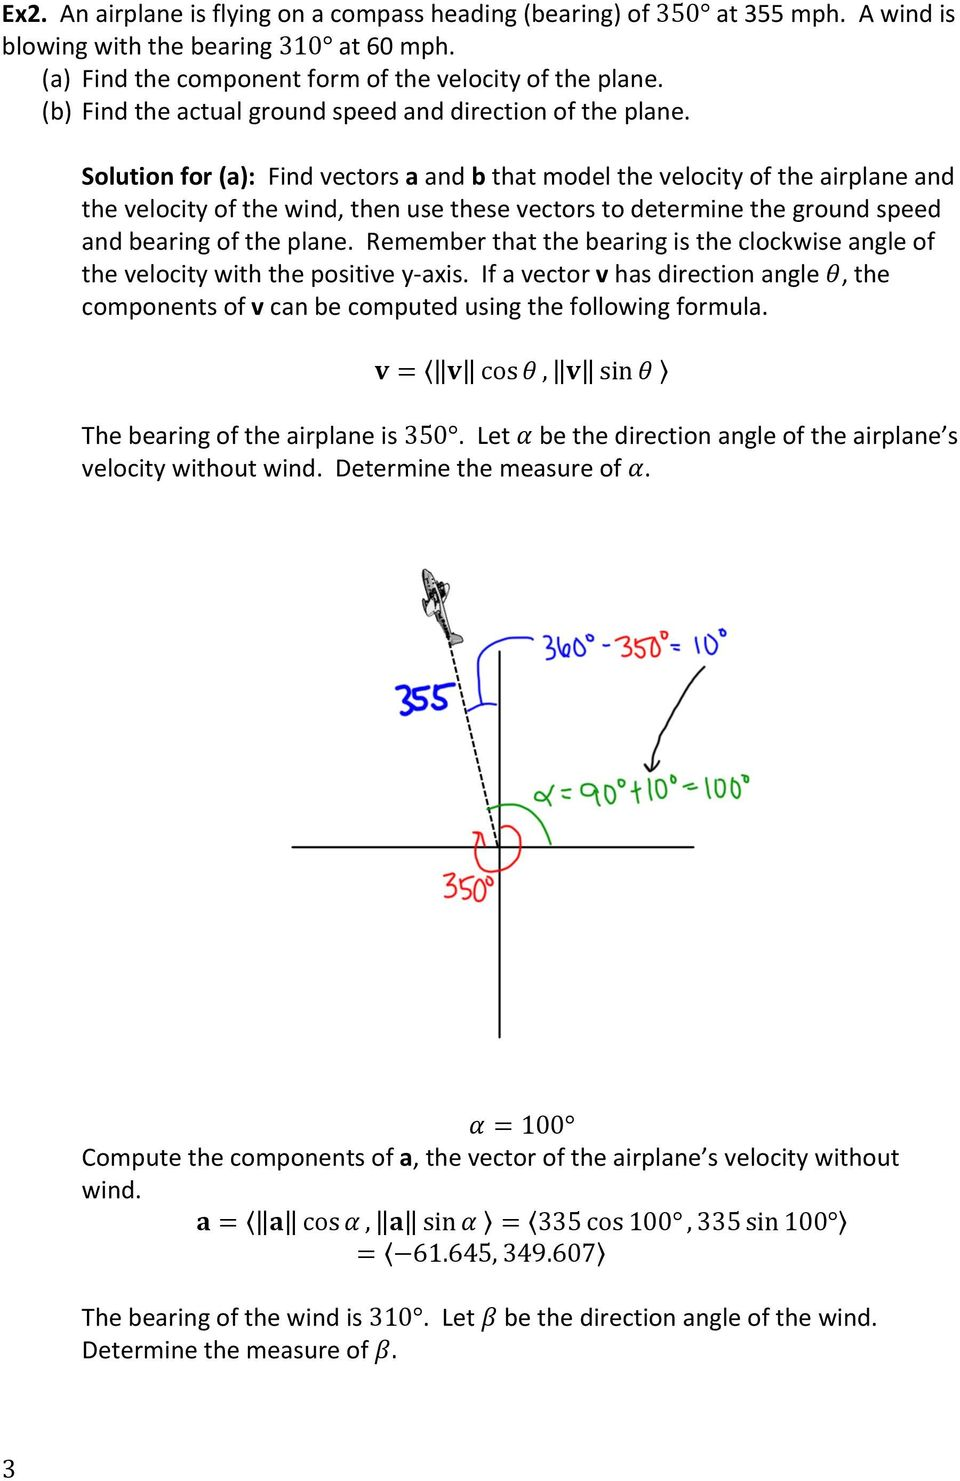 Solution for (a): Find vectors a and b that model the velocity of the airplane and the velocity of the wind, then use these vectors to determine the ground speed and bearing of the plane.